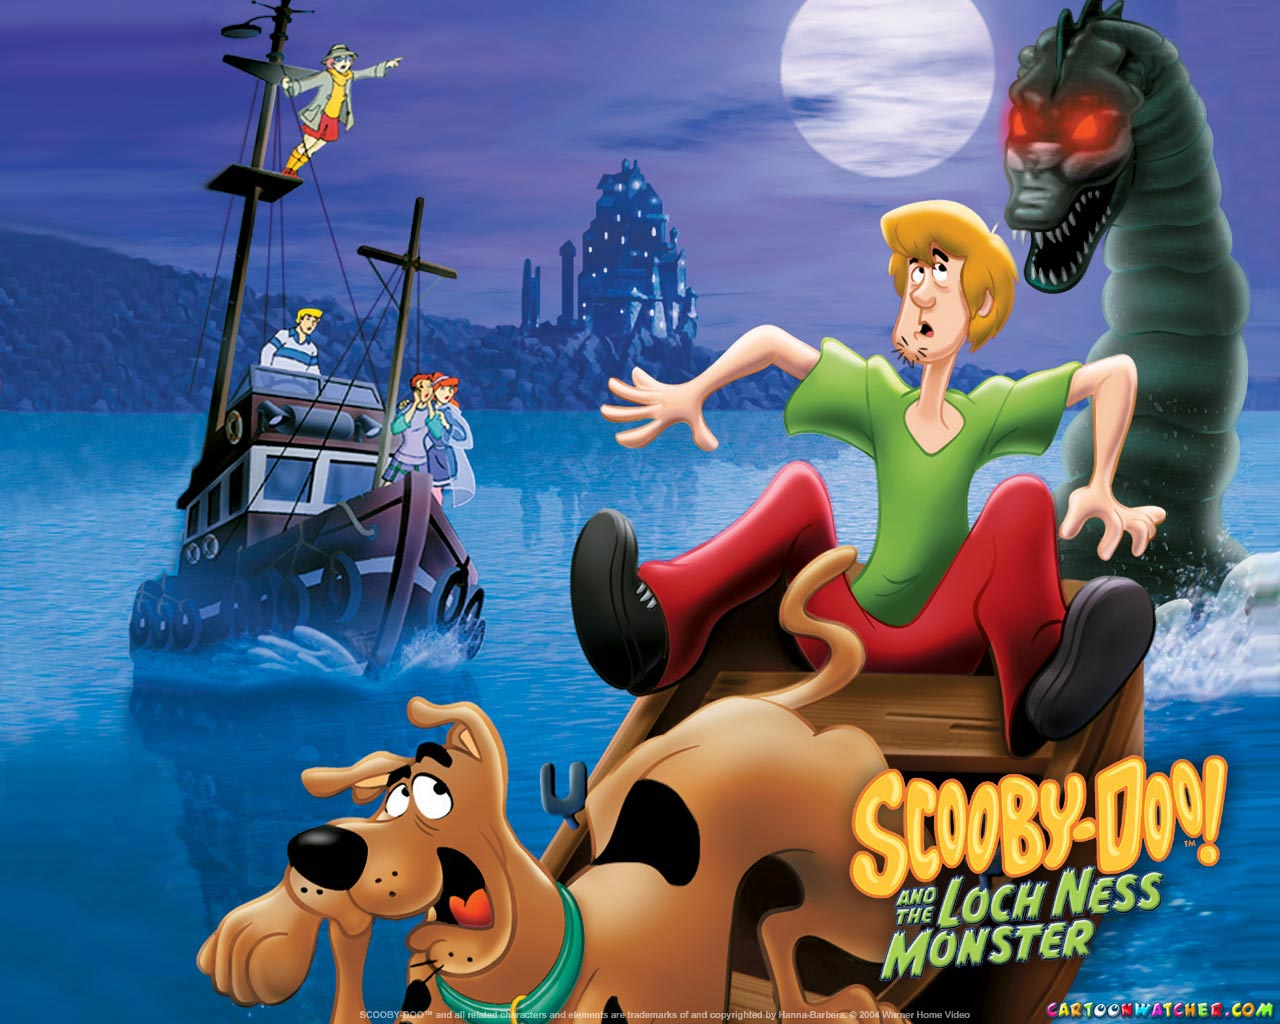 Scooby Doo & The Lochness Monster